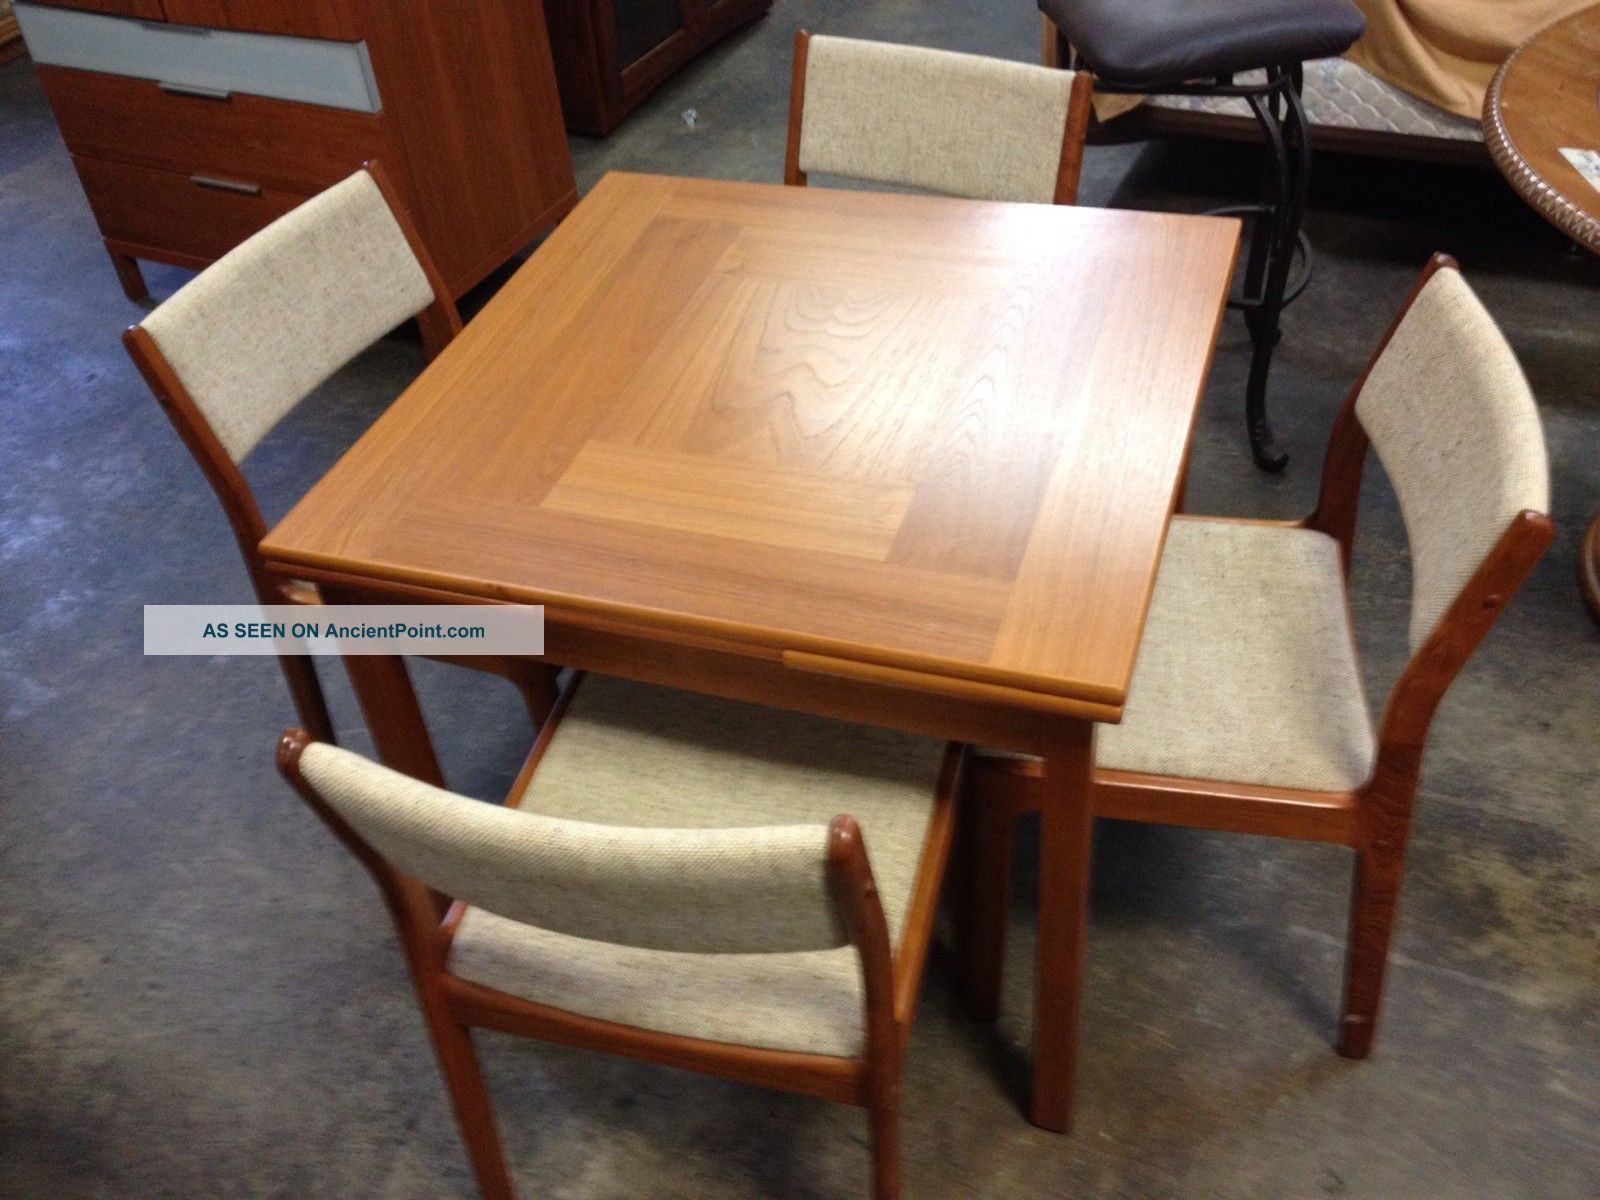 D Scan Mid Century Danish Modern Eames Era Dinette Dining Table And Chairs Set